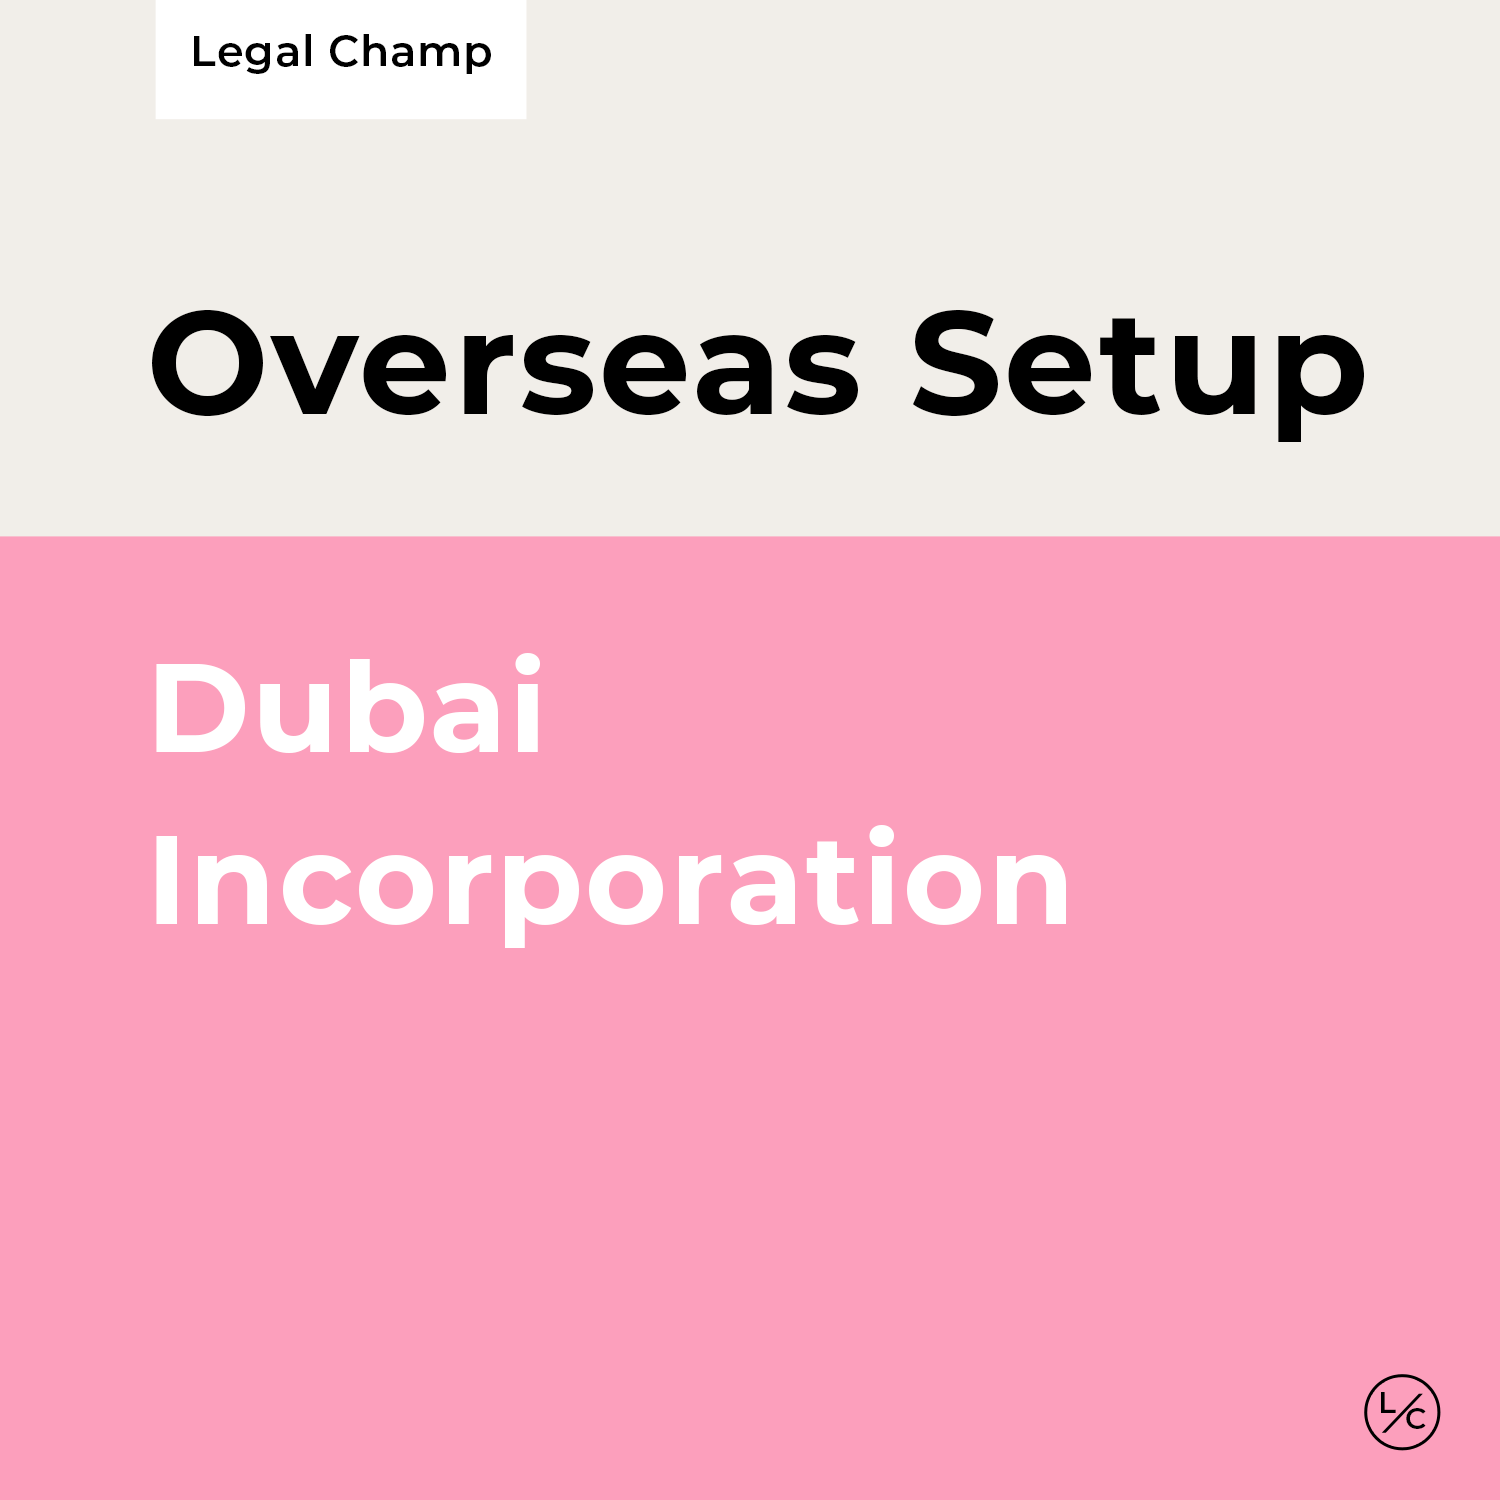 Dubai Incorporation